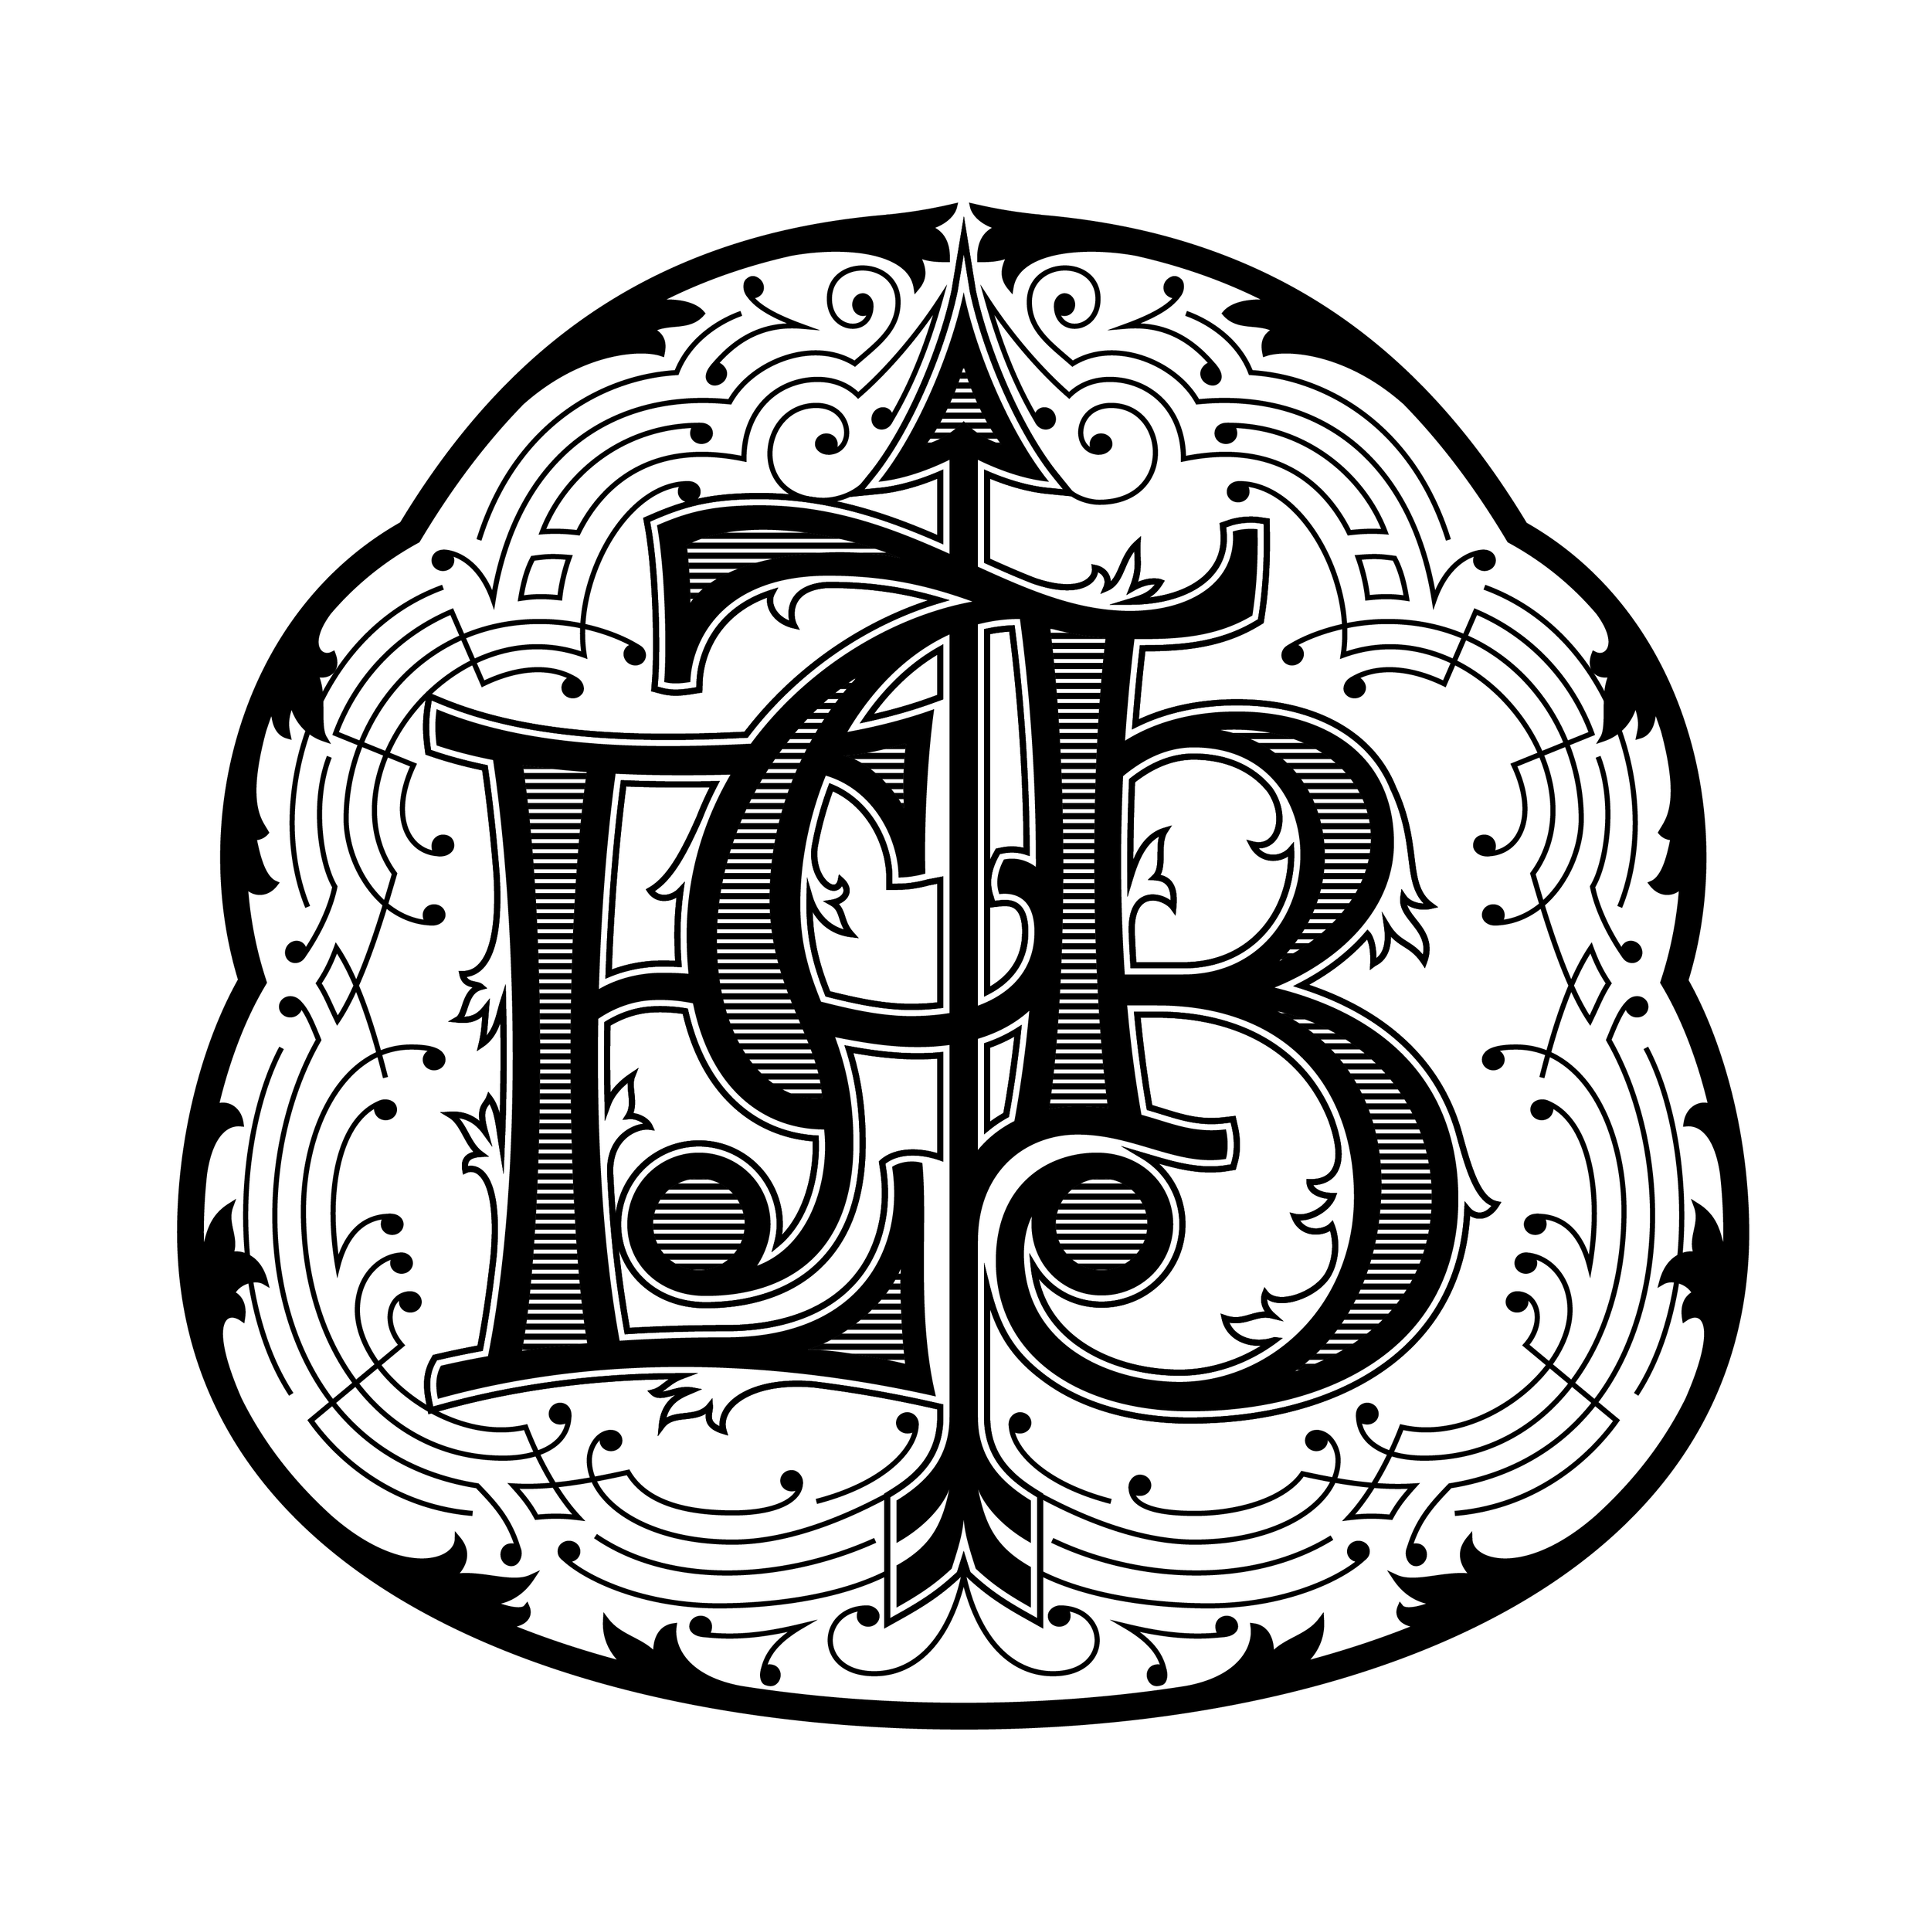 EAB Monogram Ornamental Black and White-01.png